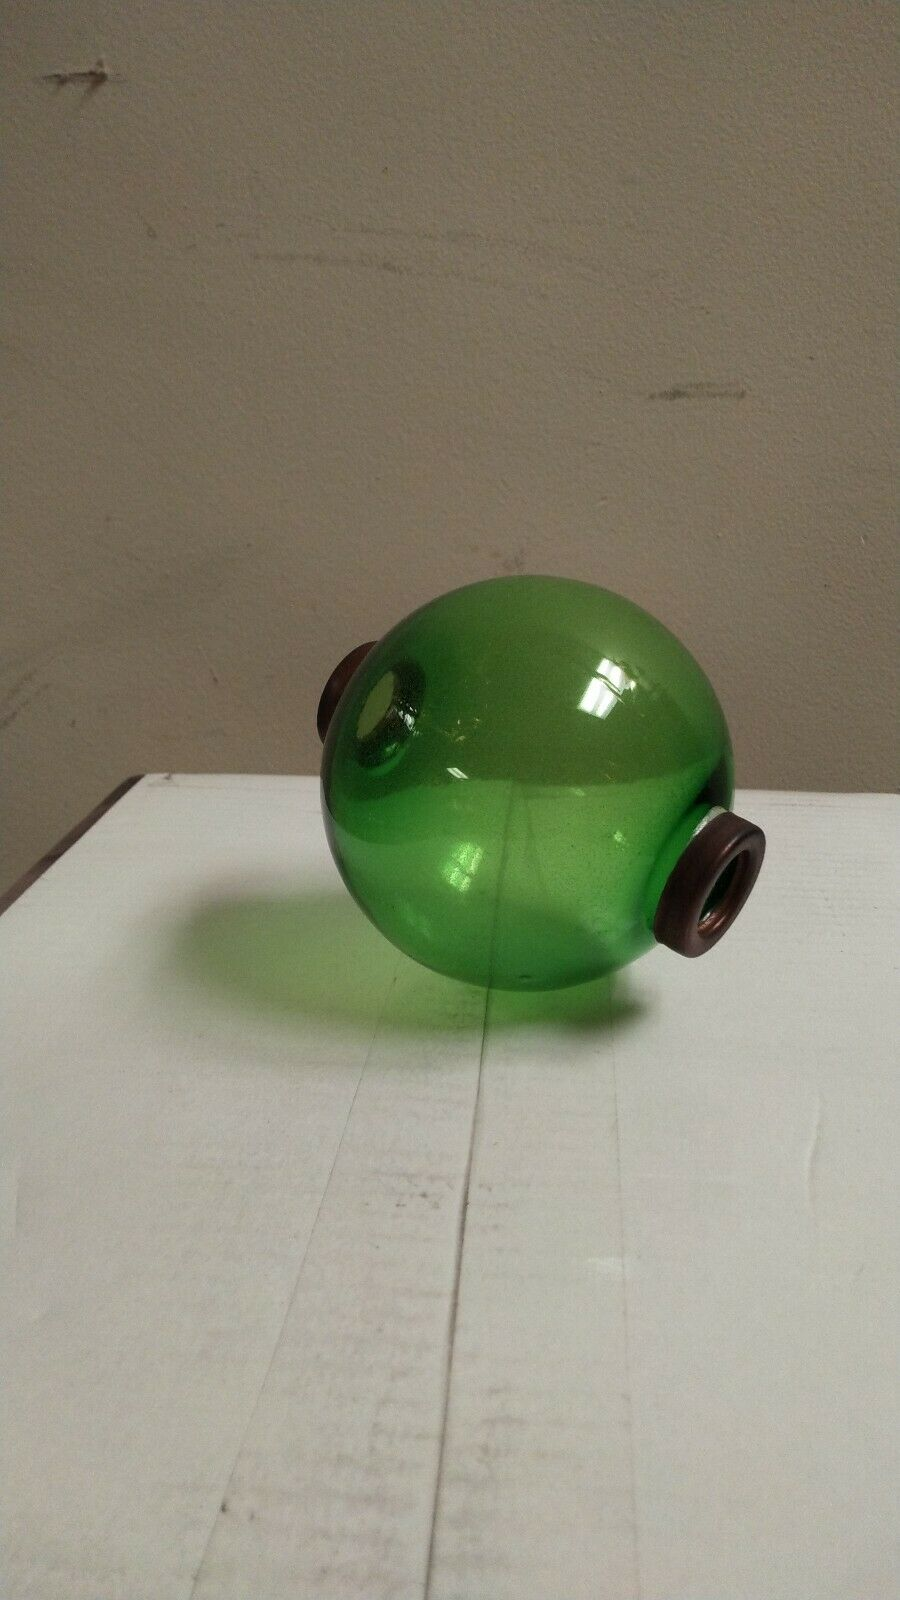 4.5'' green GLASS BALL for weathervane OR LIGHTENING RODS fits 3/4'' rod